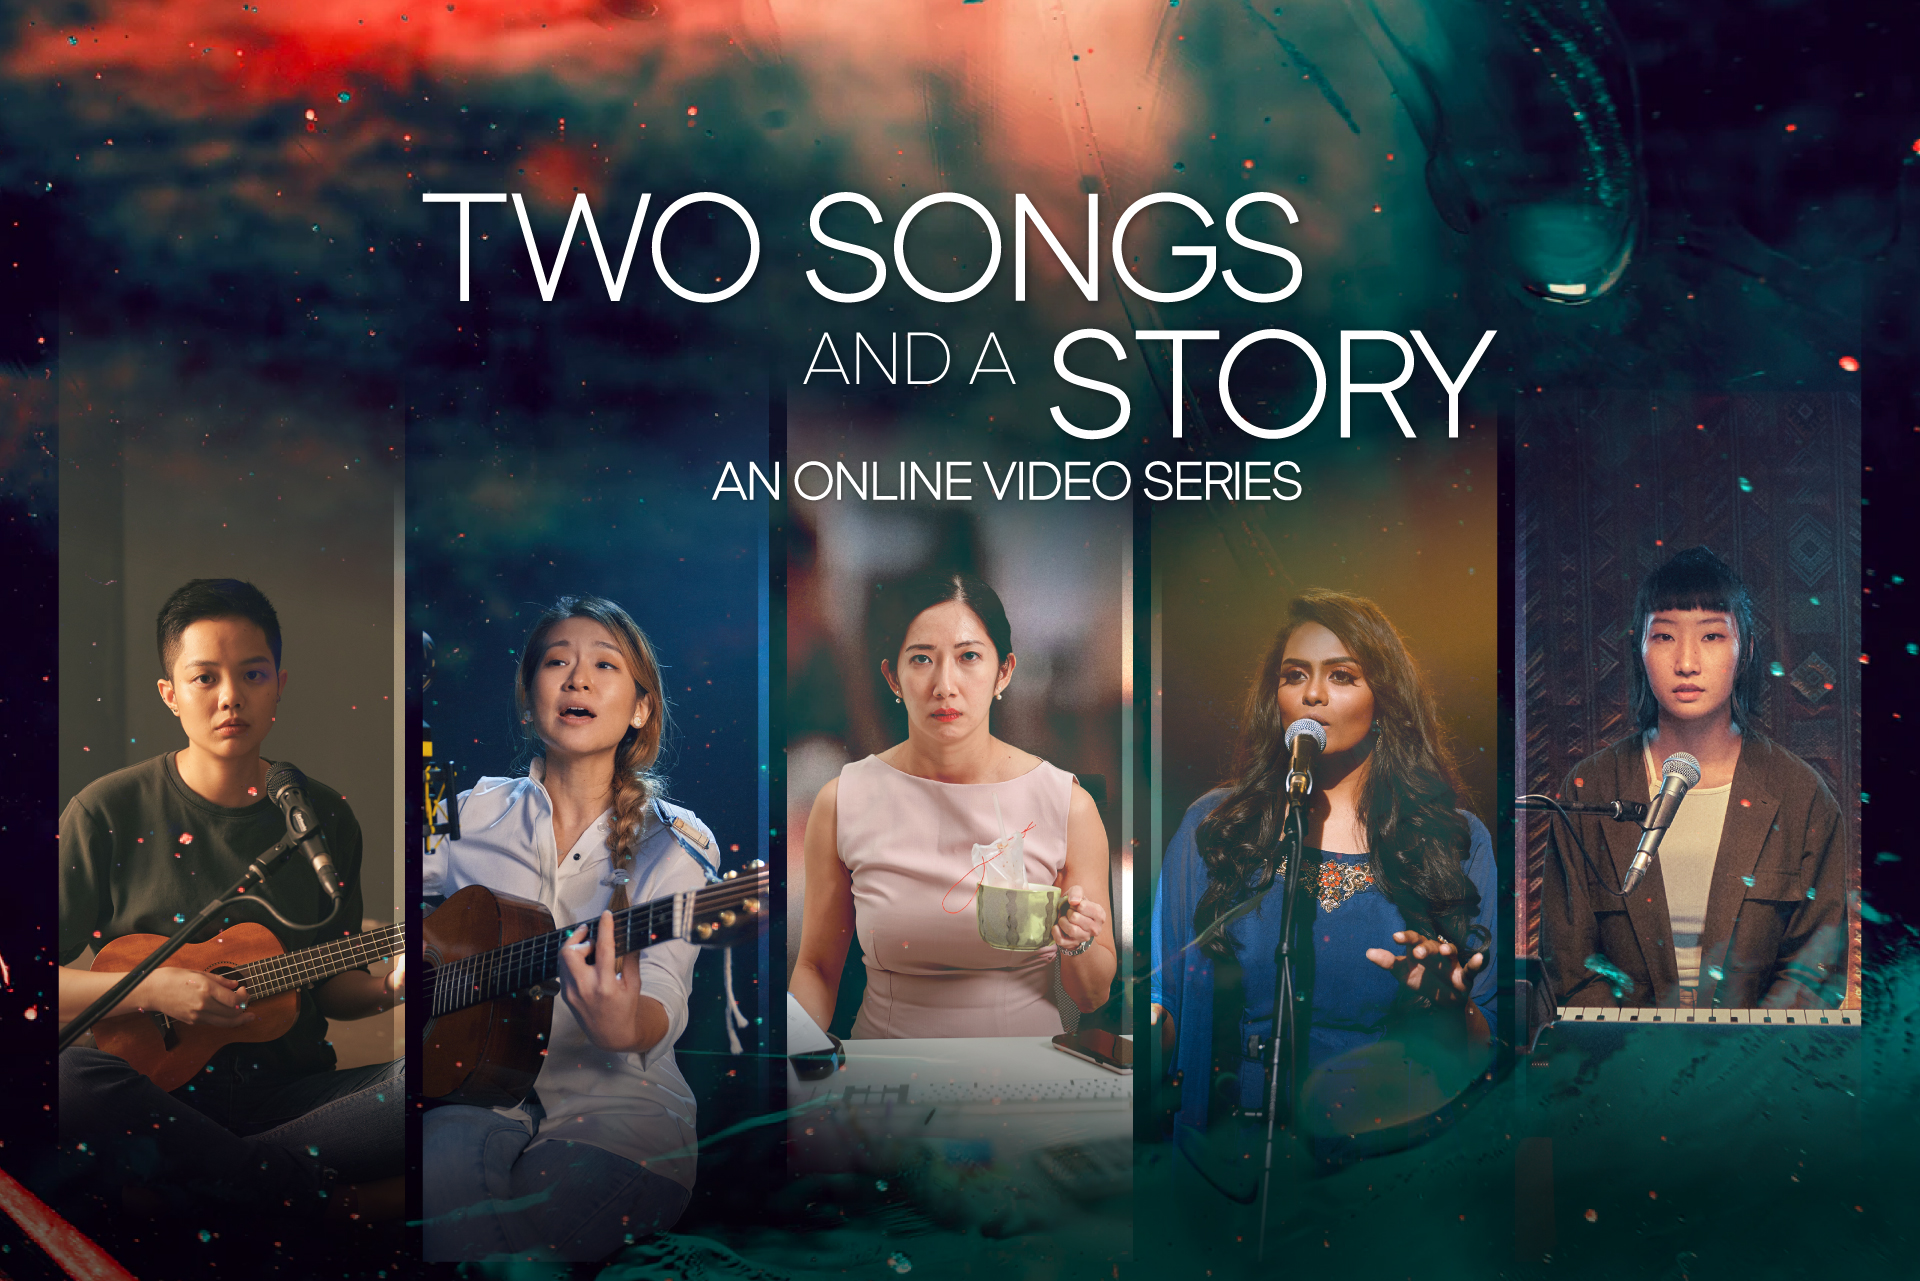 Two Songs and a Story_website event image 1920x1280 (2)